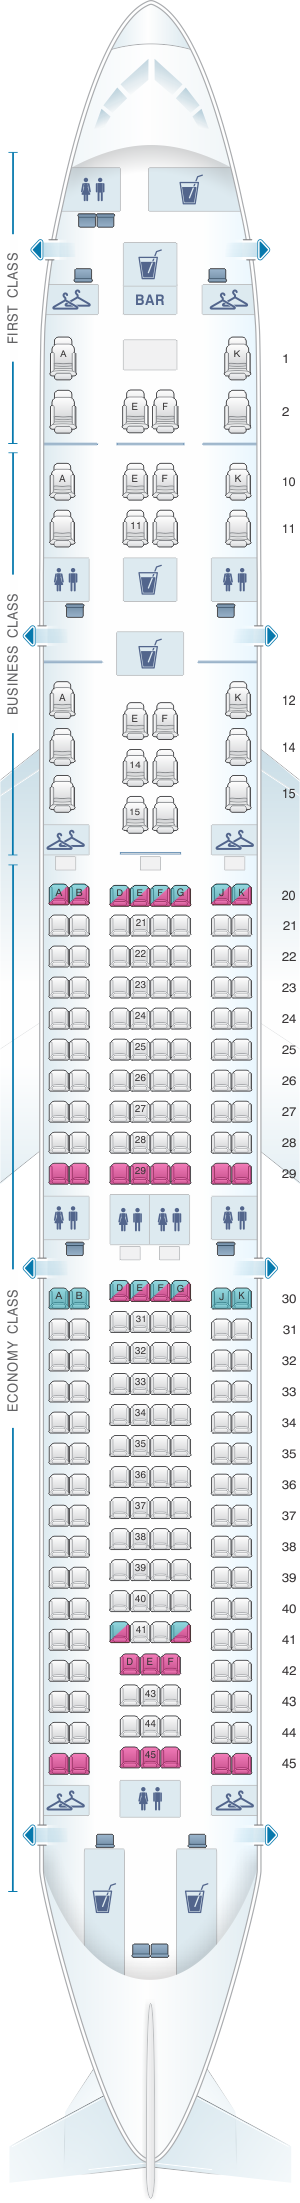 Seat map for Oman Air Airbus A330 300 V2